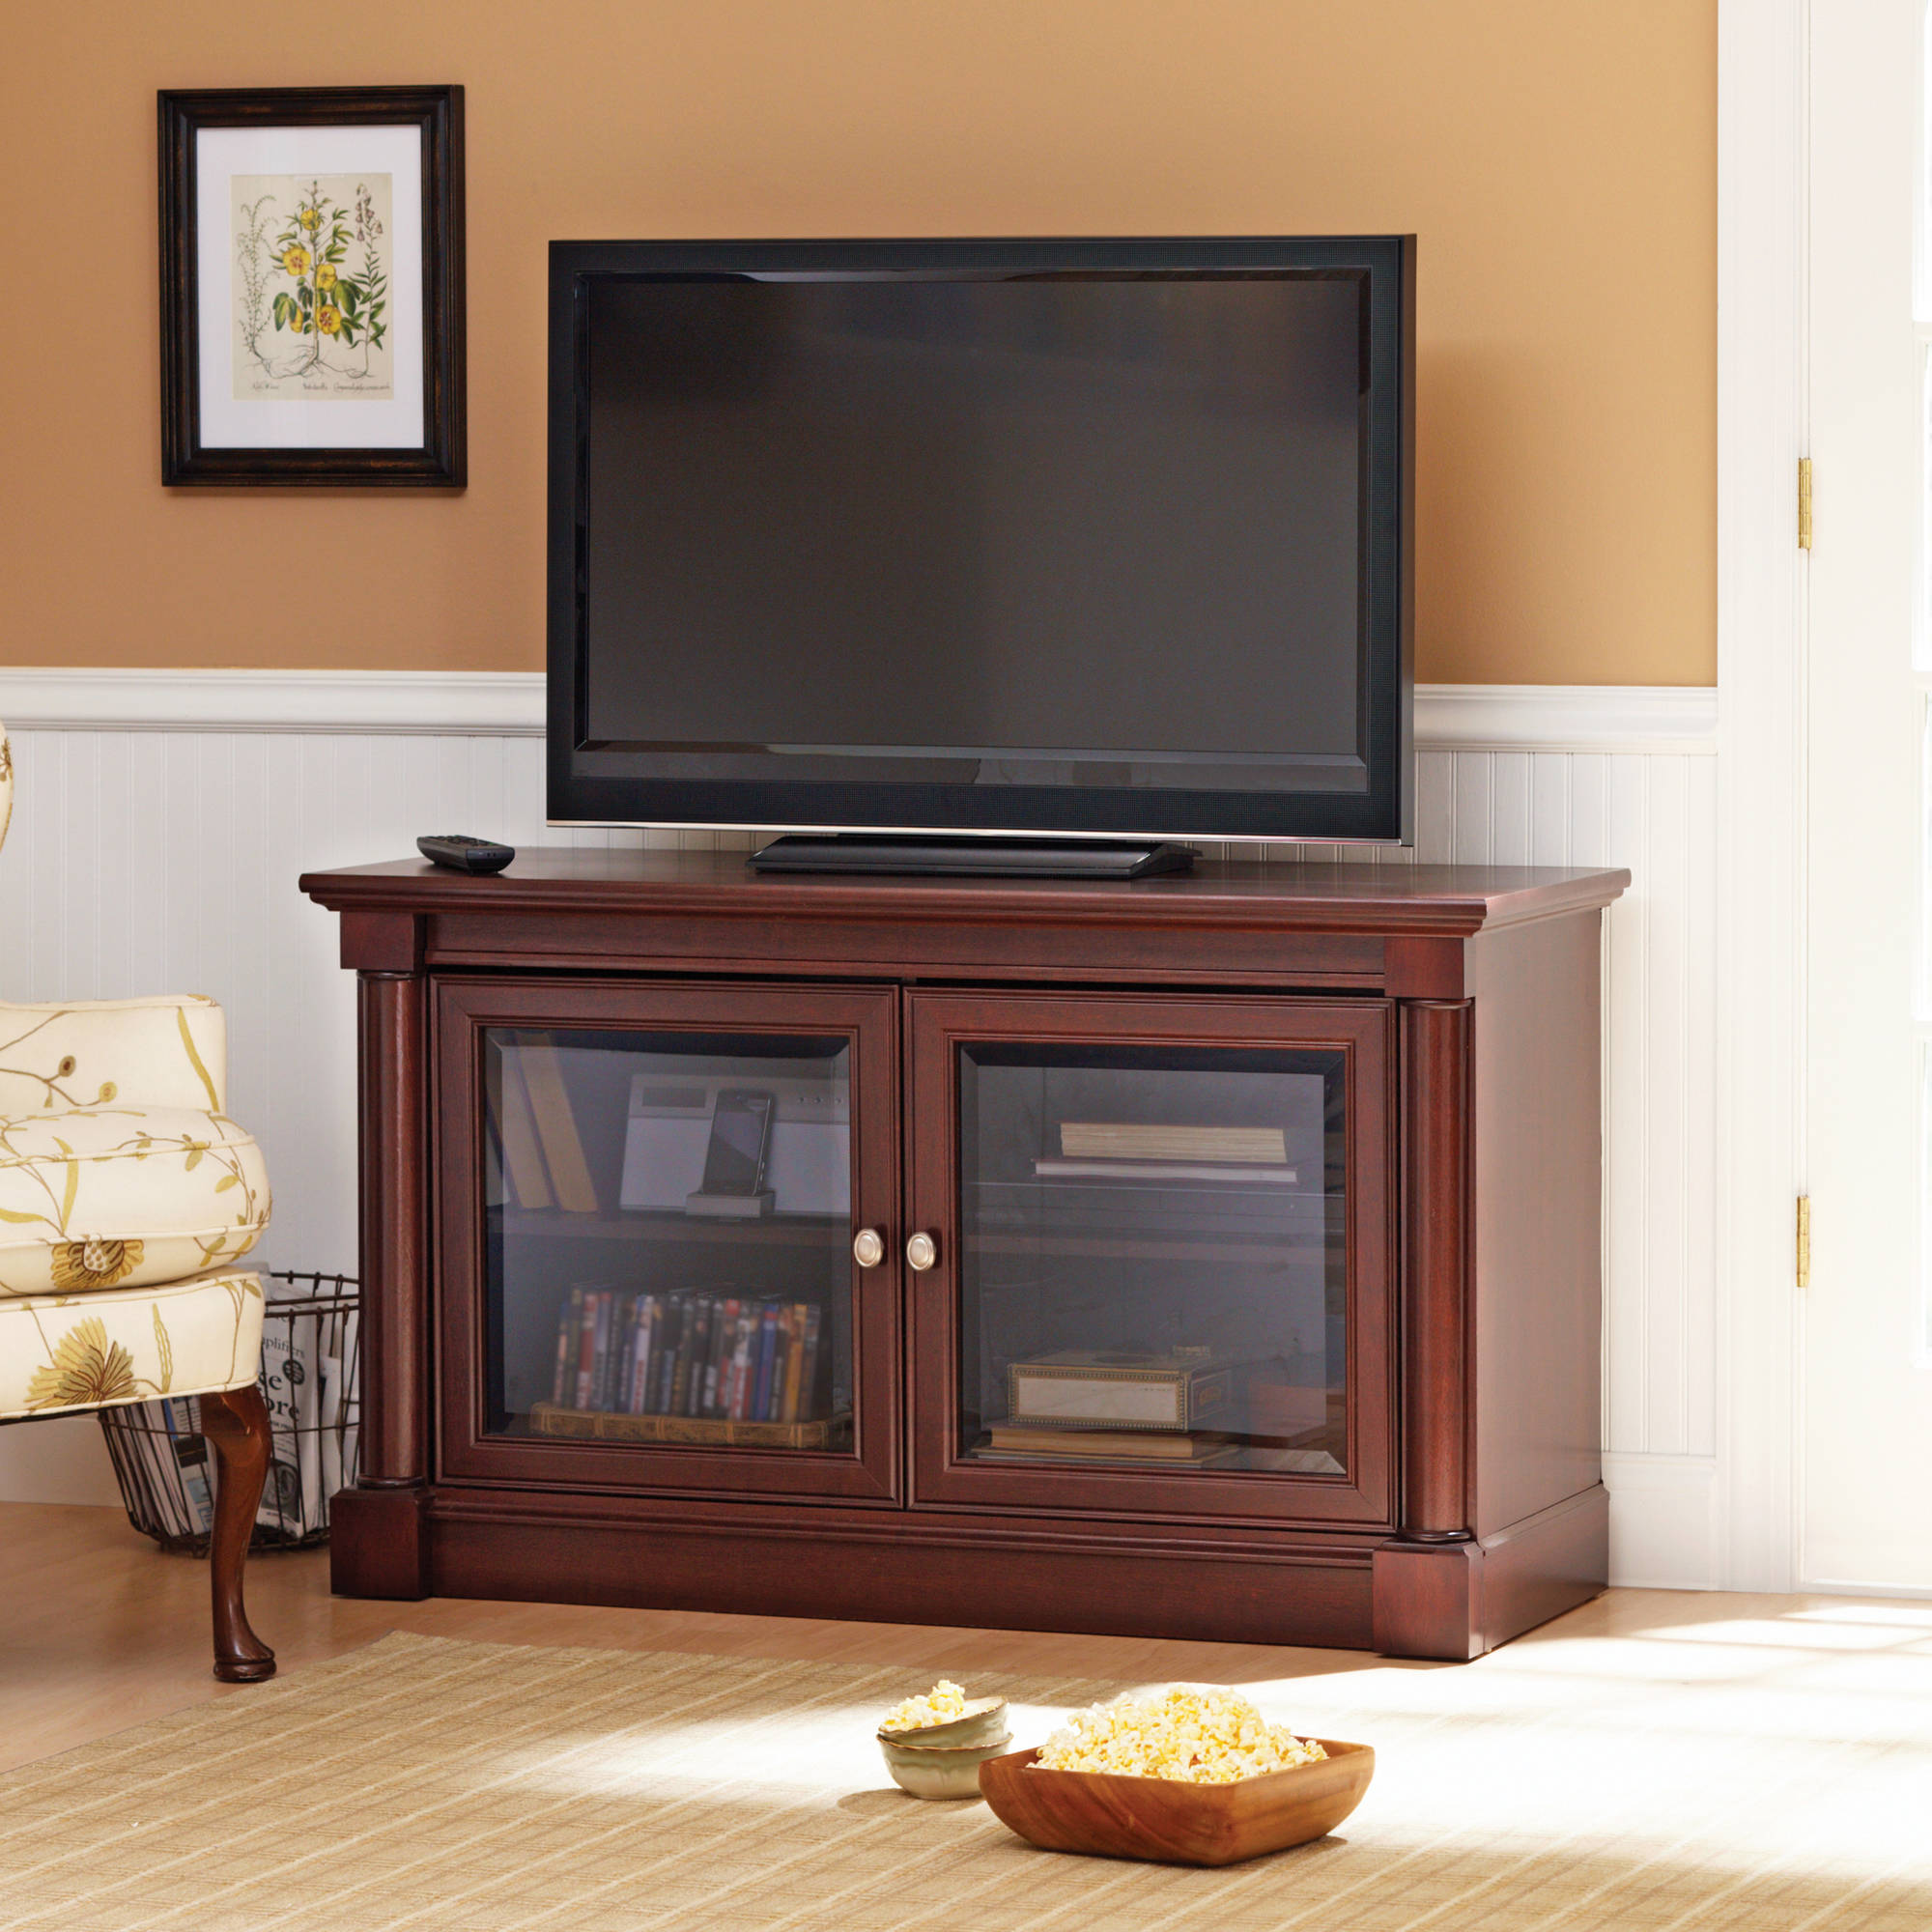 Better Homes and Gardens River Crest TV Stand for TVs up to 42